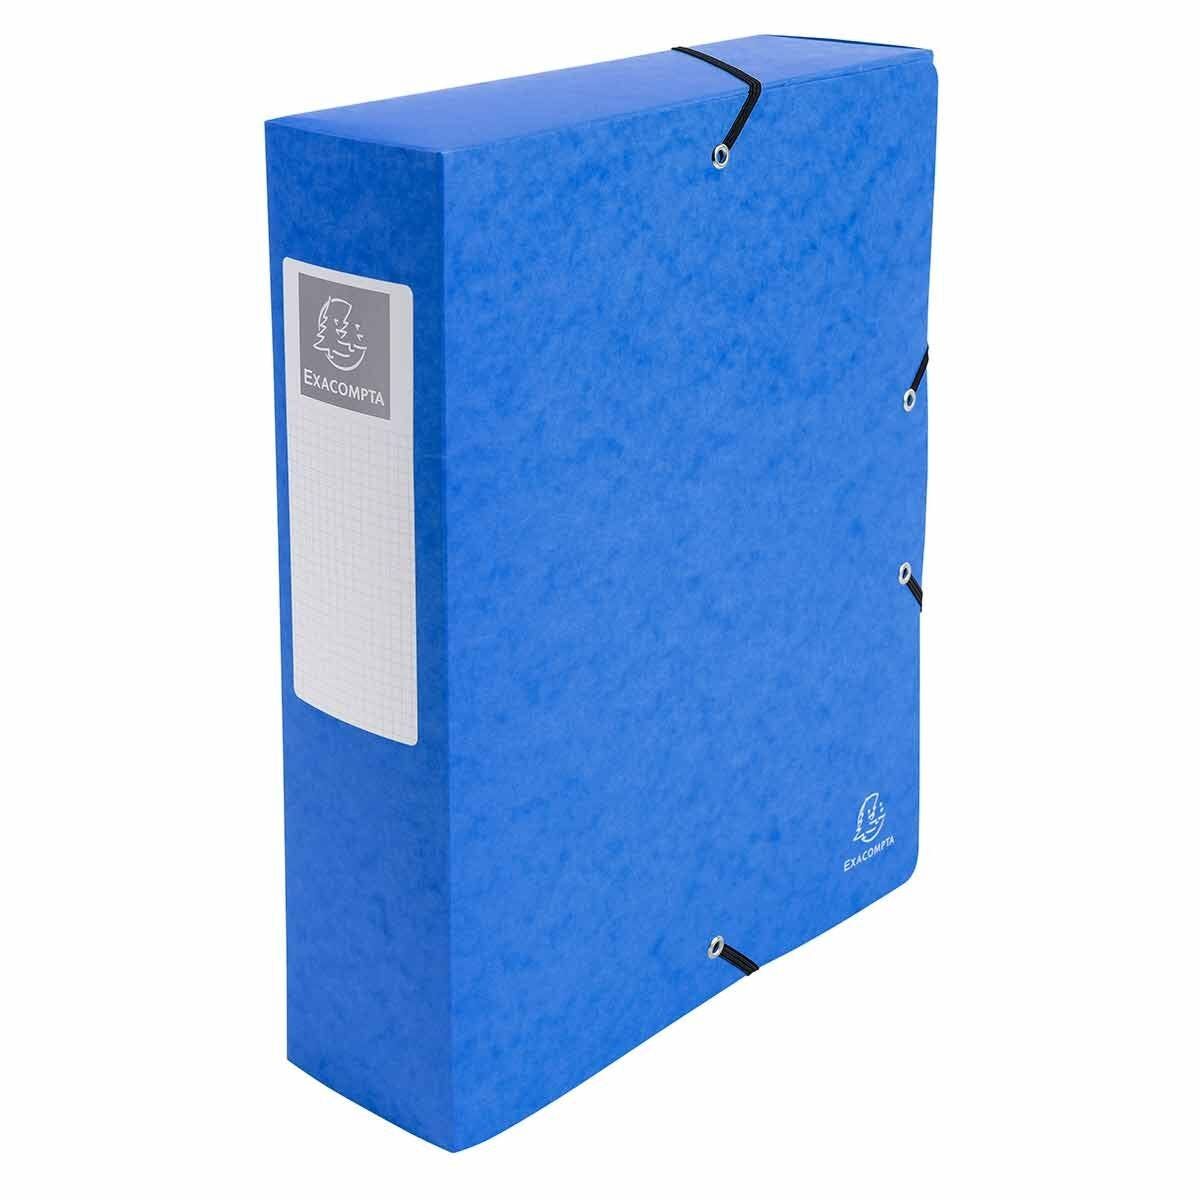 Exacompta Elasticated Box File Pressboard A4 80mm Pack of 6 Blue